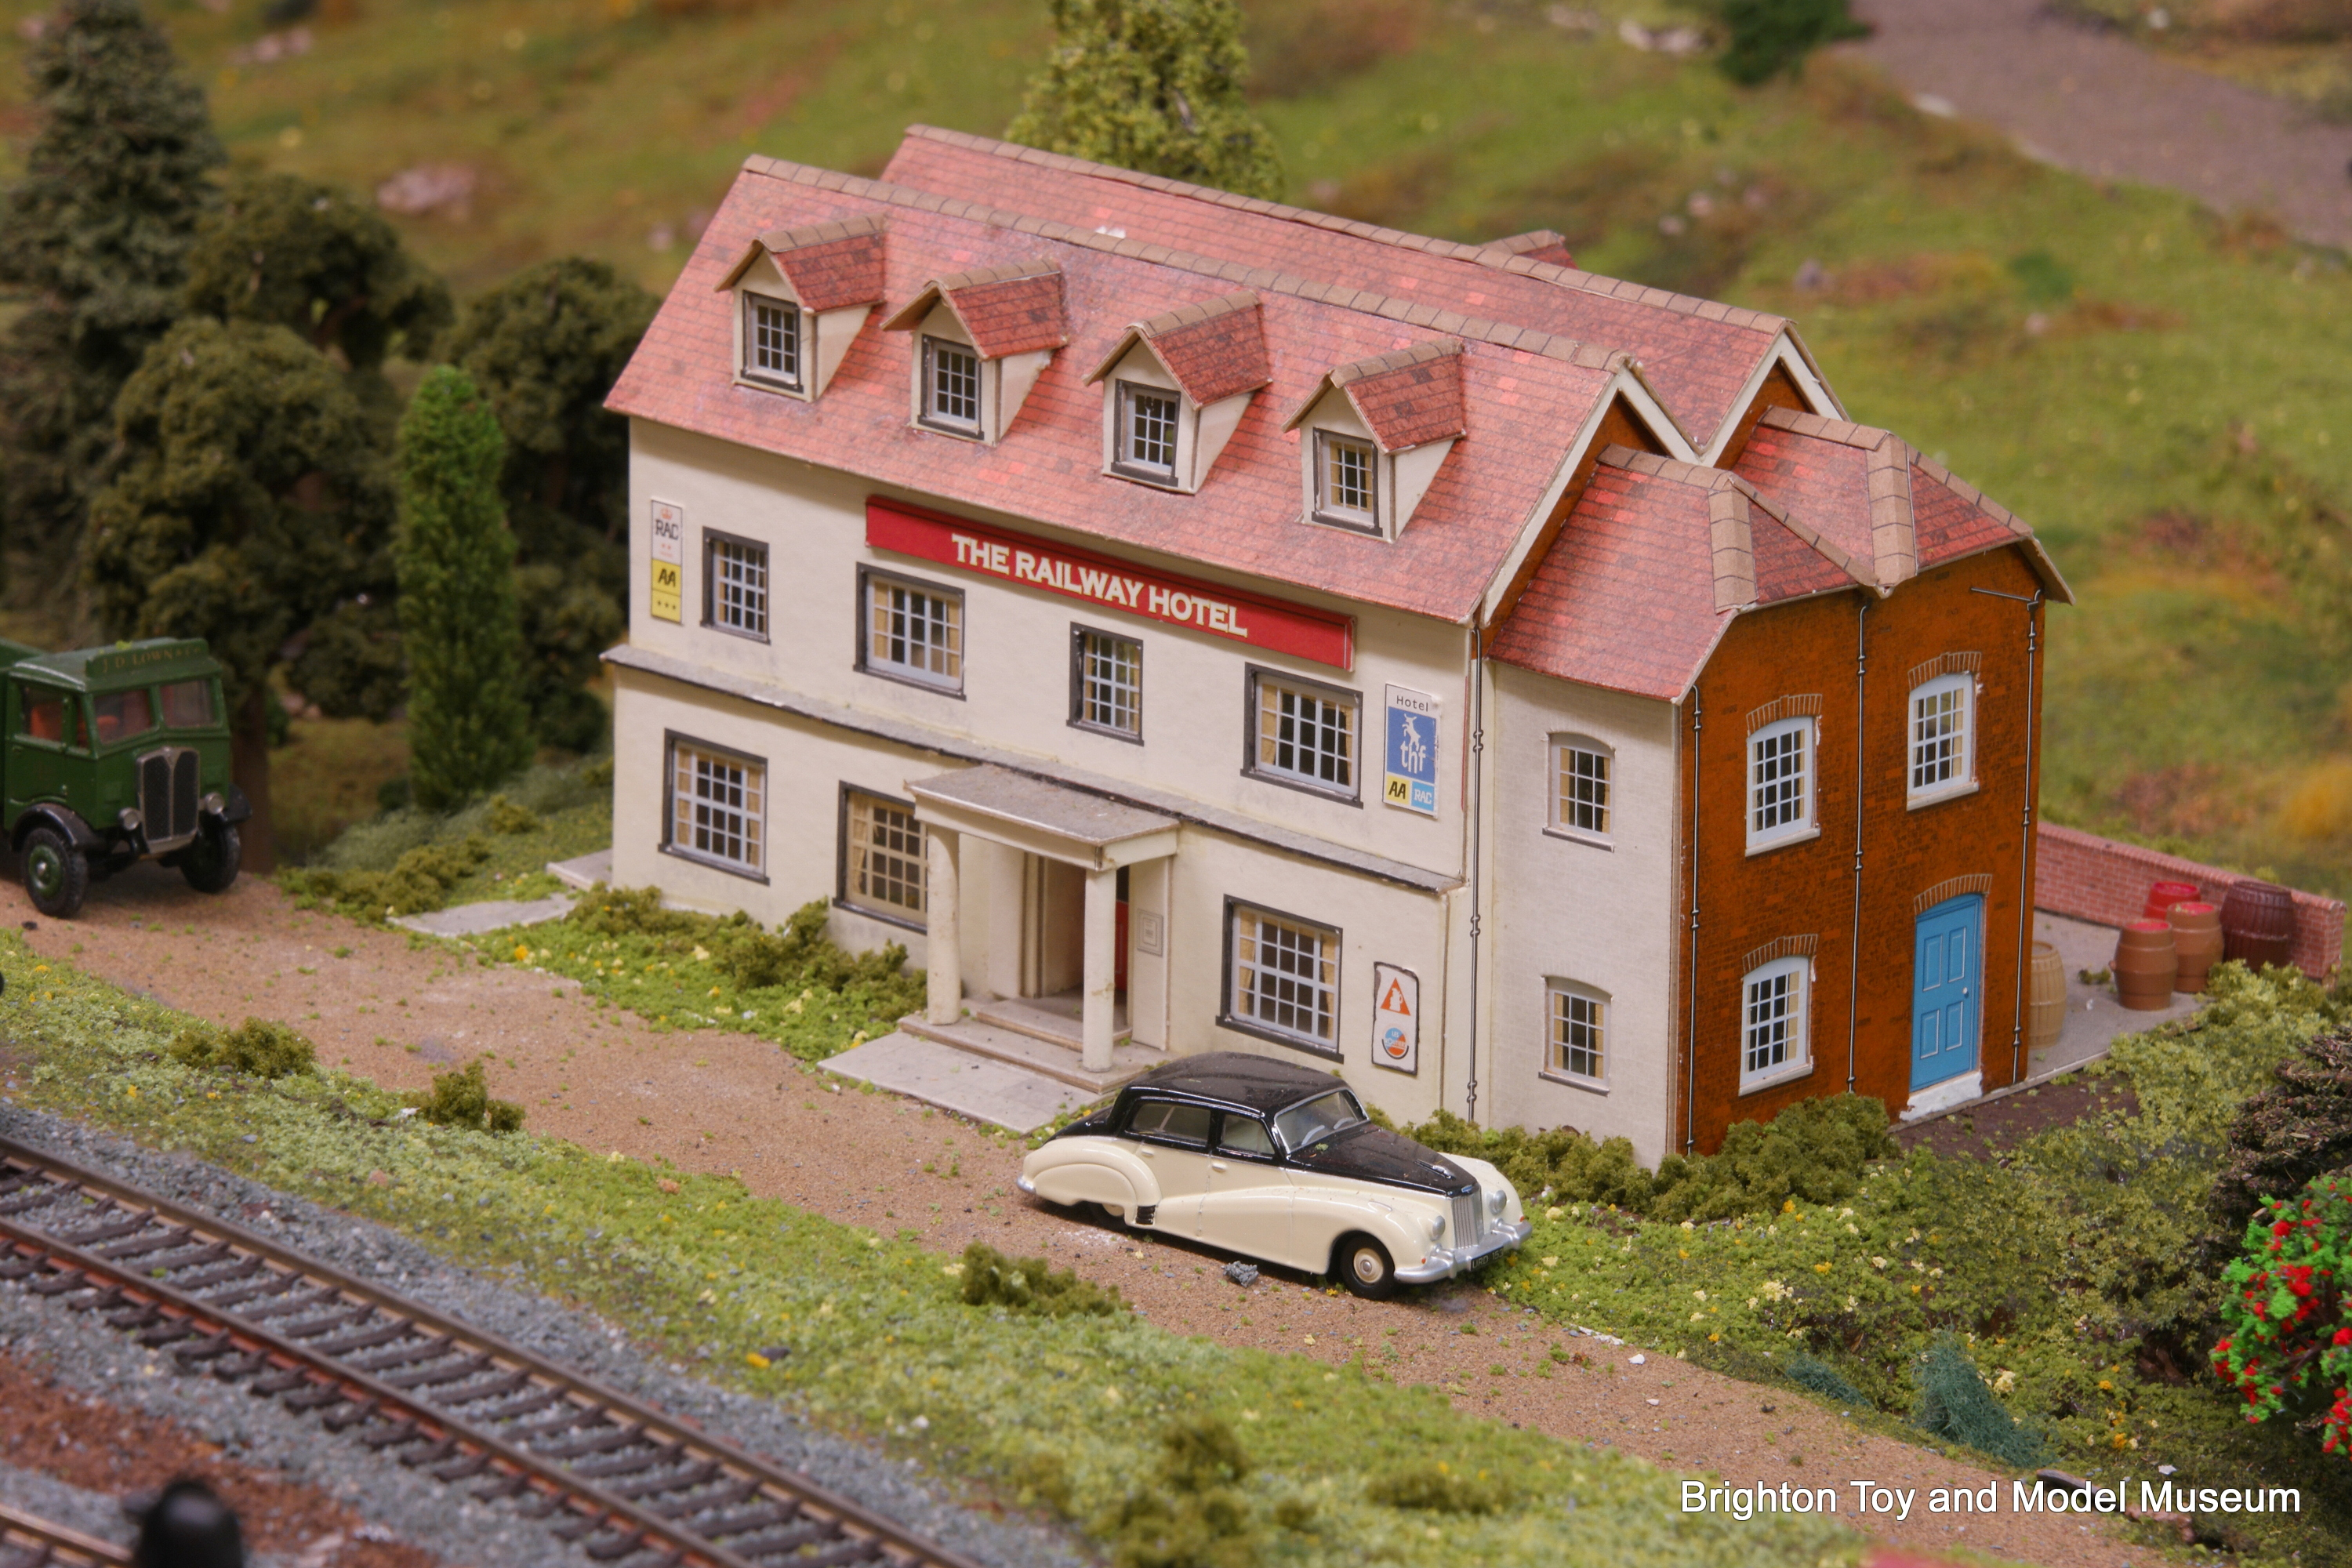 Railway Hotel (Superquick B33) - The Brighton Toy and Model Index